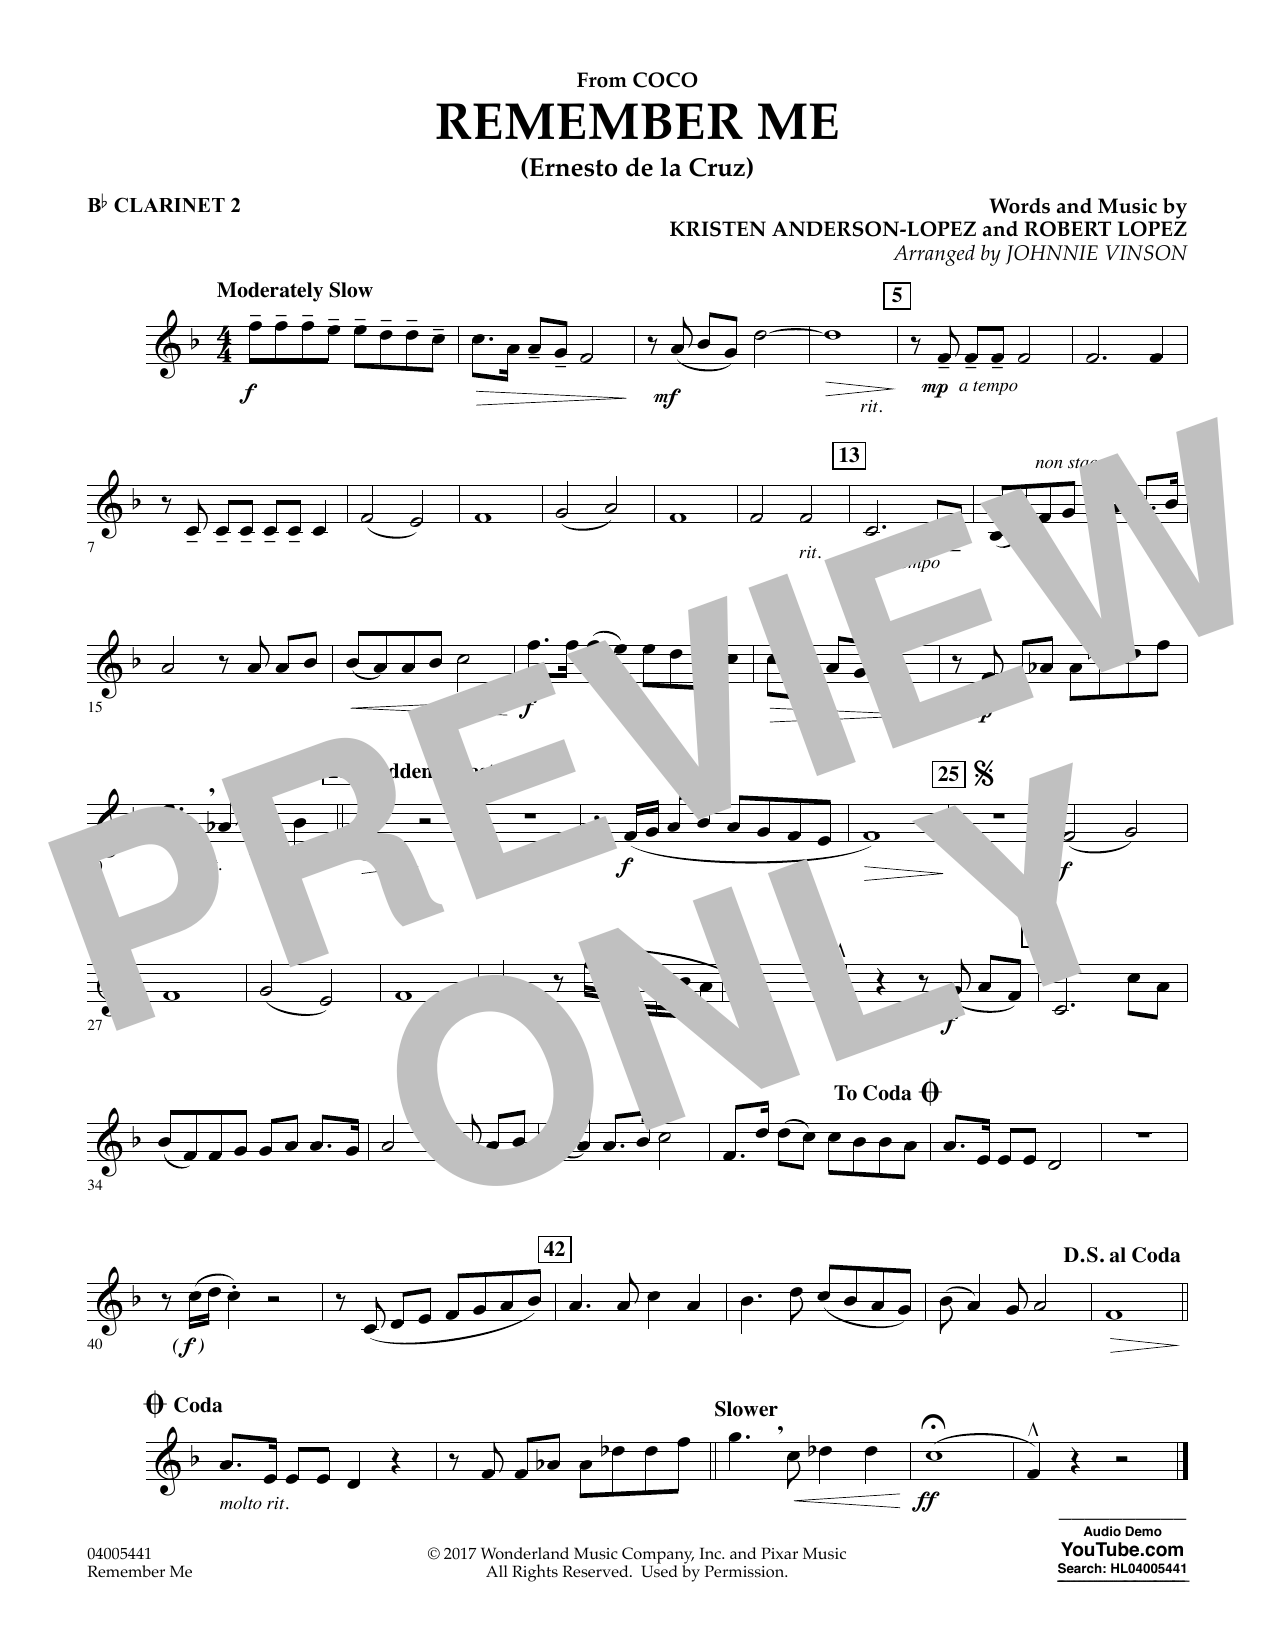 Kristen Anderson-Lopez & Robert Lopez Remember Me (from Coco) (arr. Johnnie Vinson) - Bb Clarinet 2 sheet music notes and chords. Download Printable PDF.